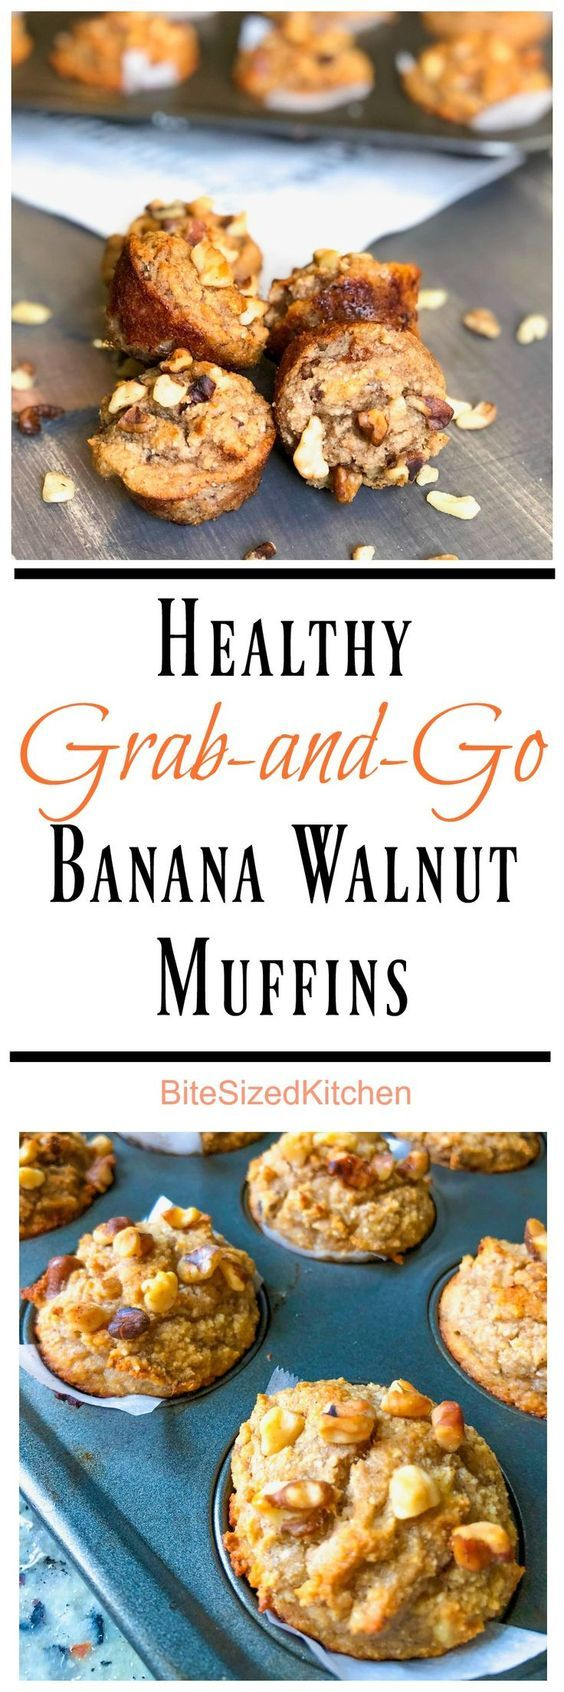 Let's be honest - Who can resist easy & healthy muffin recipes, EXPECIALLY when they are low in calories and perfect for a diet? Can you? If you are like...